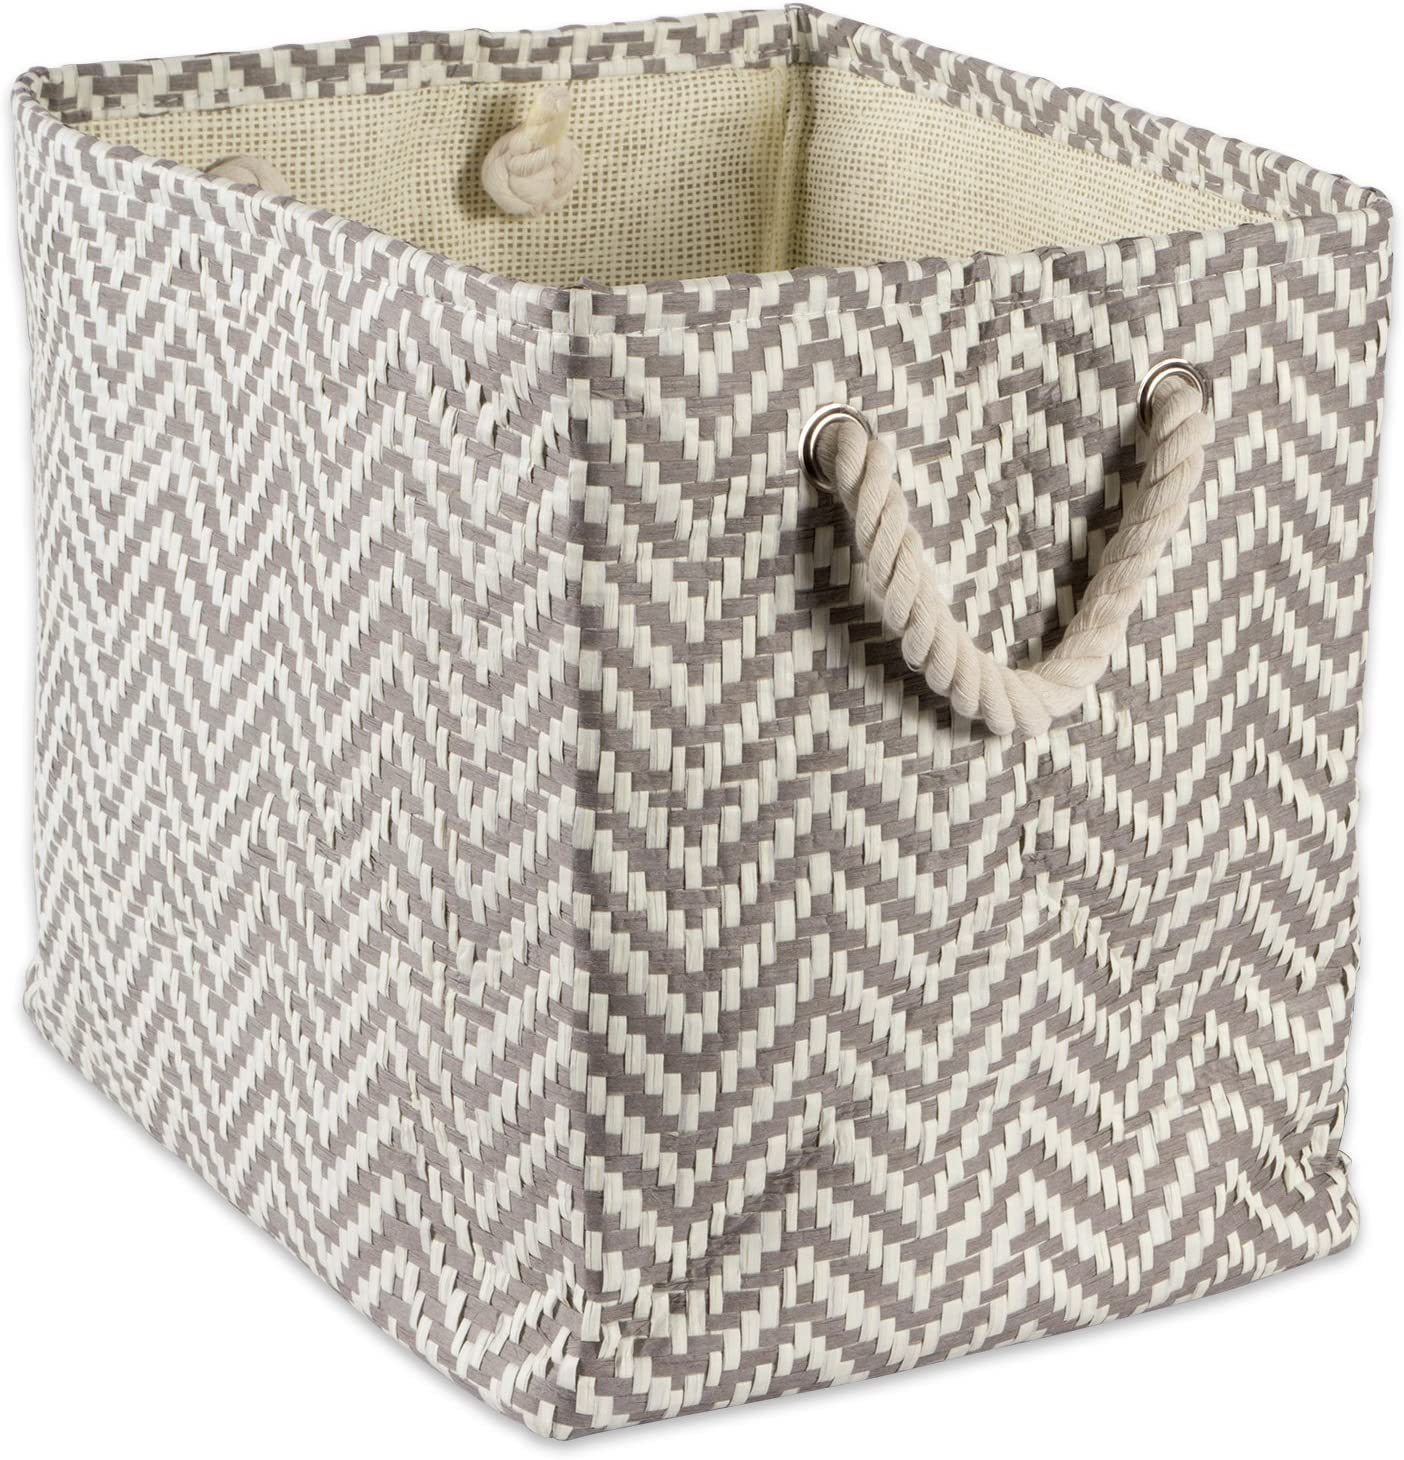 """DII Woven Paper Storage Basket or Bin, Collapsible & Convenient Home Organization Solution for Office, Bedroom, Closet, Toys, & Laundry (Large – 17x12x12""""), Gray Chevron"""